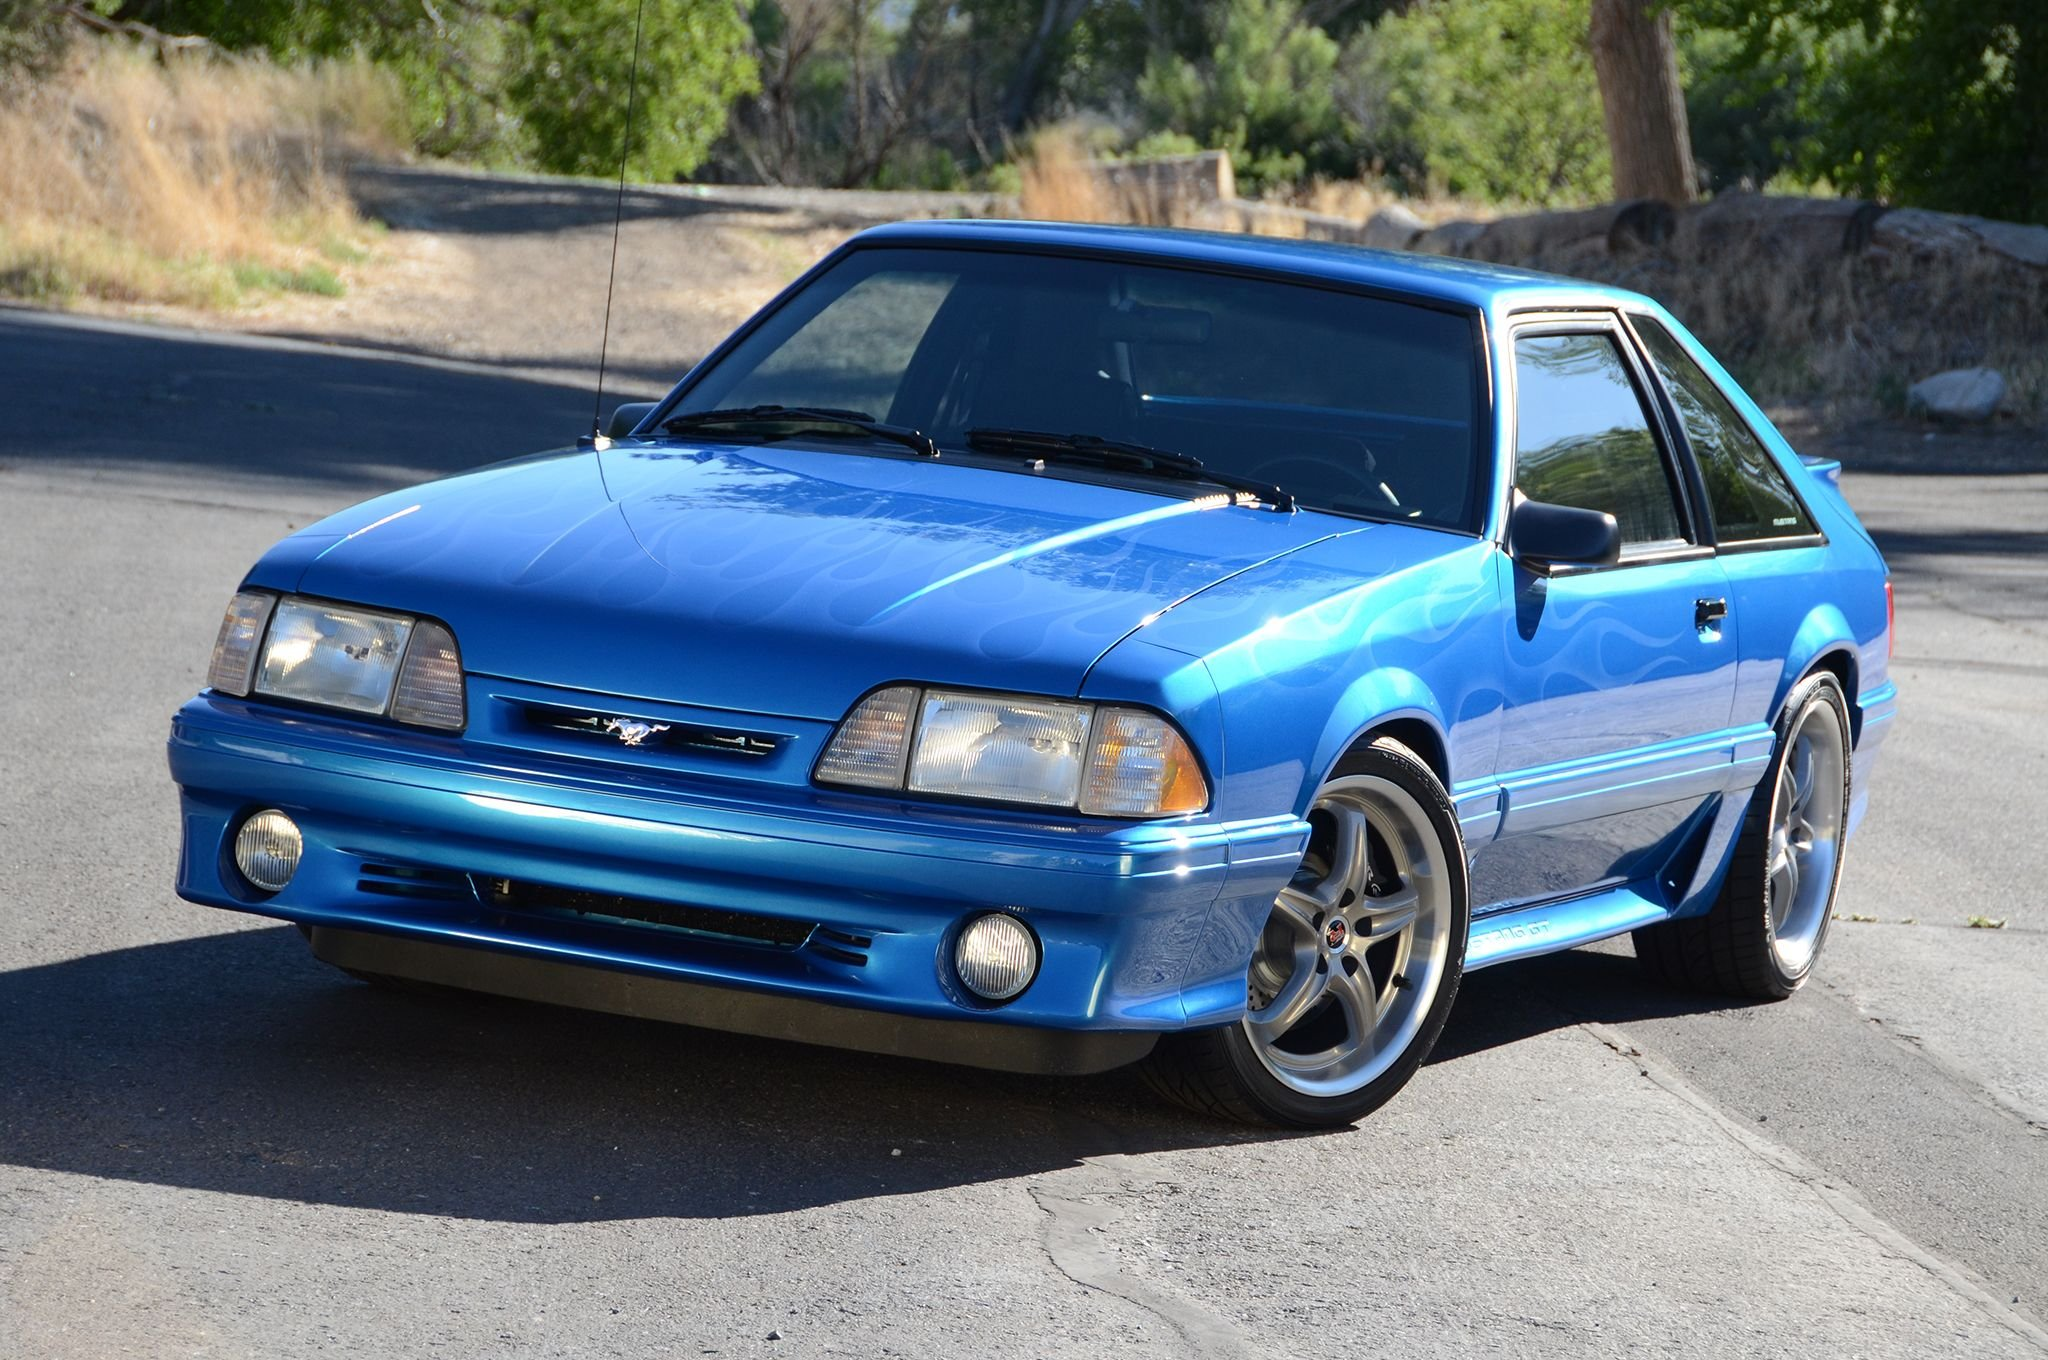 1992 ford mustang gt cars modified blue wallpaper 2048x1360 662280 wallpaperup